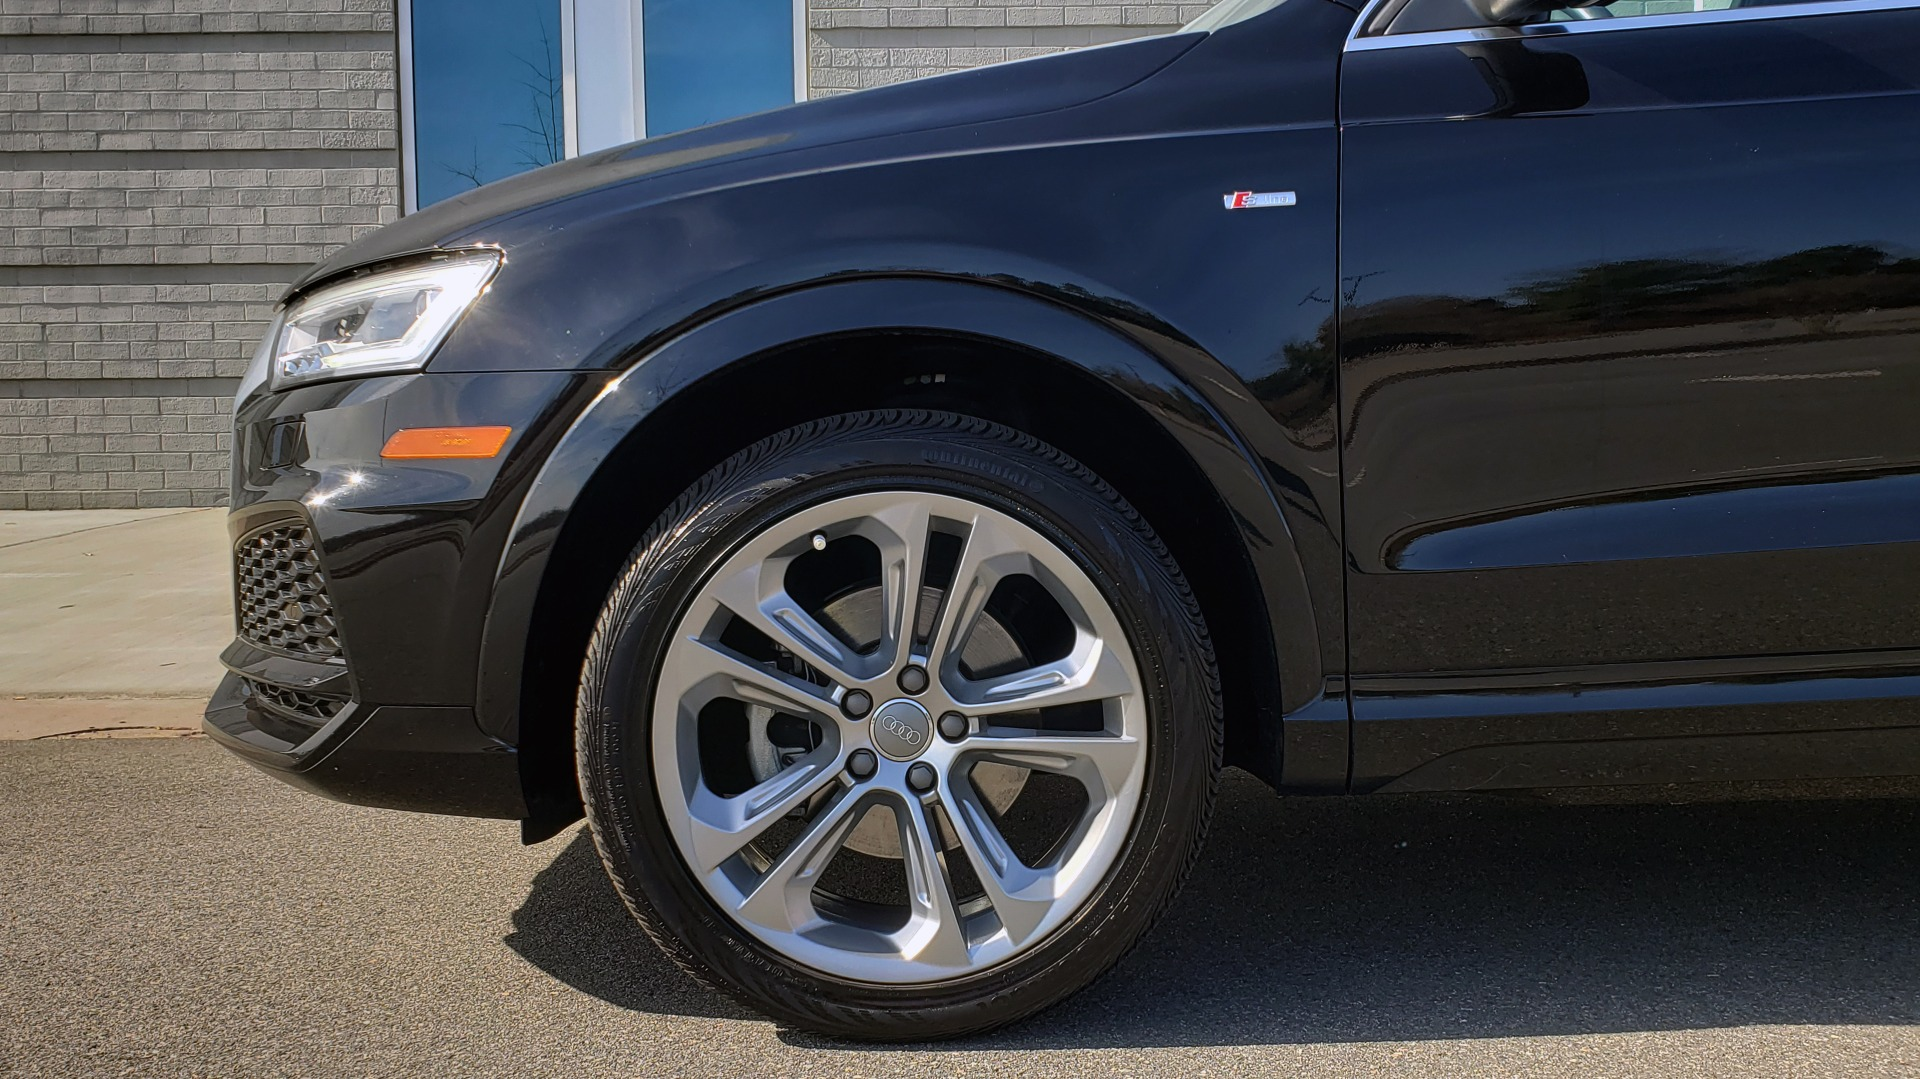 Used 2018 Audi Q3 SPORT PREMIUM PLUS / TECHNOLOGY / SUNROOF / BOSE / REARVIEW for sale Sold at Formula Imports in Charlotte NC 28227 77